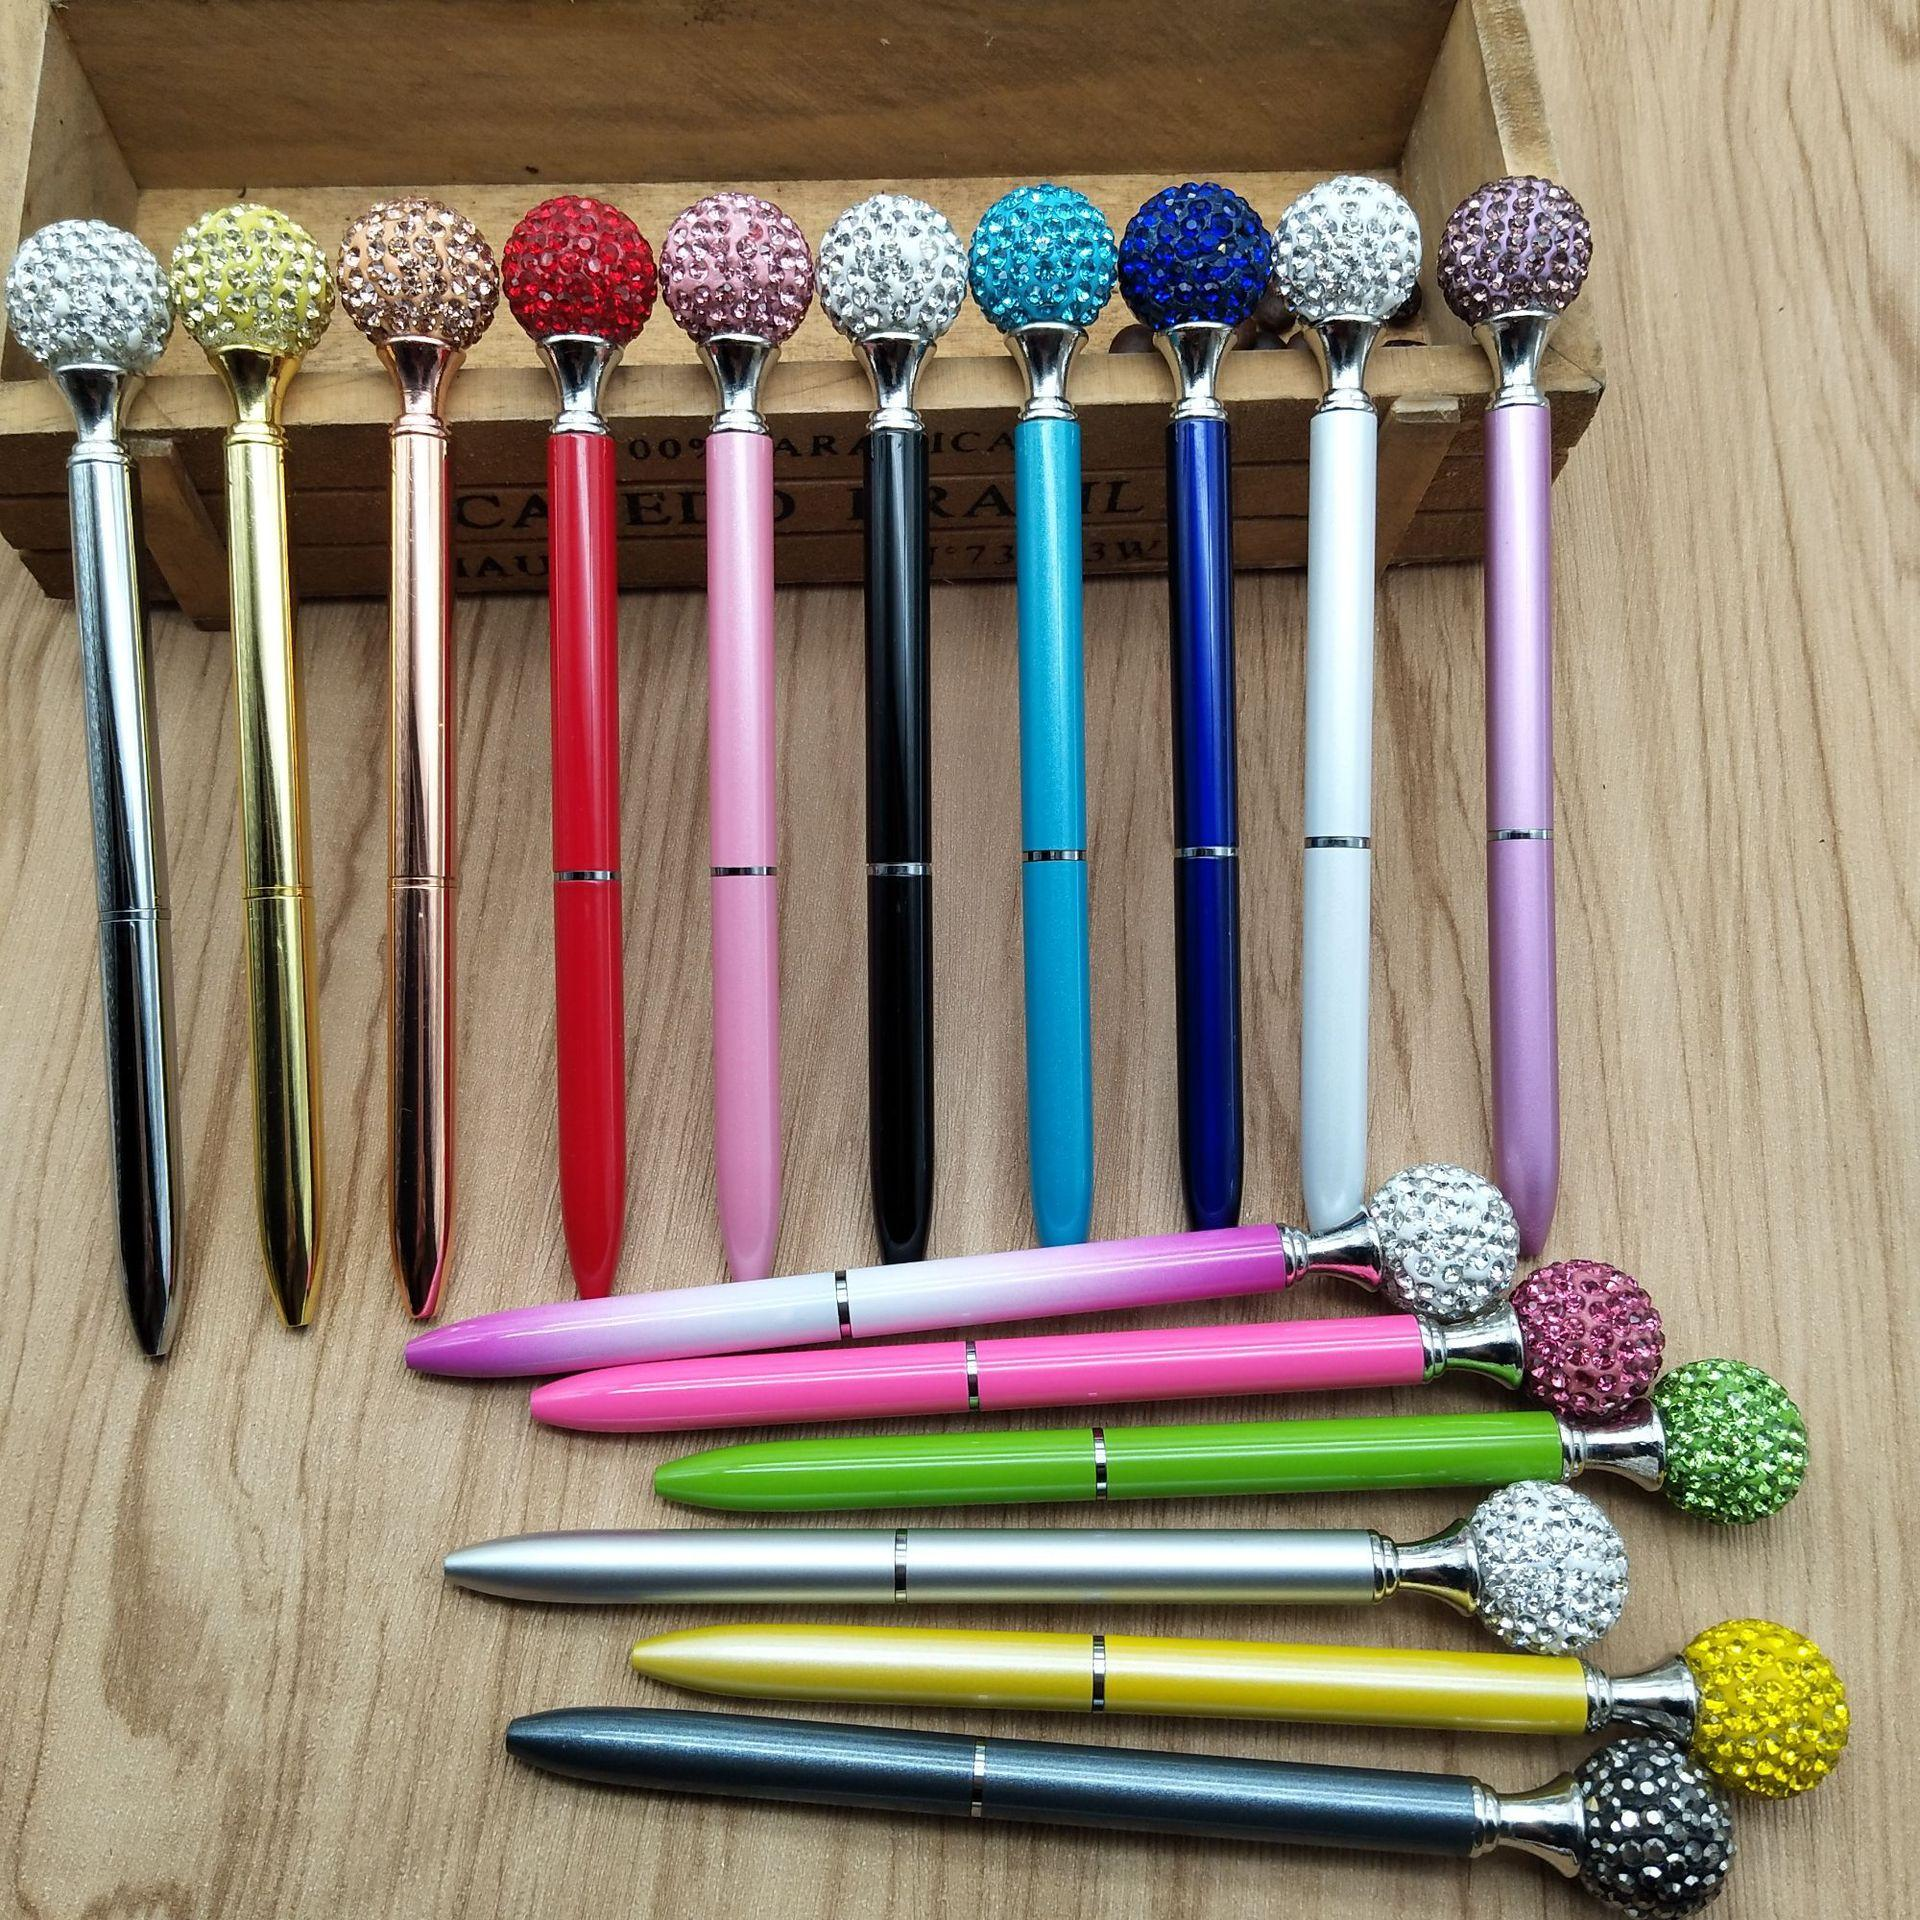 Big Diamond Ball Pen Rhinestones Crystal Metal Ballpoint Pens Black Ink, Different Colors for Women Girls School Office Supplies,Black Ink